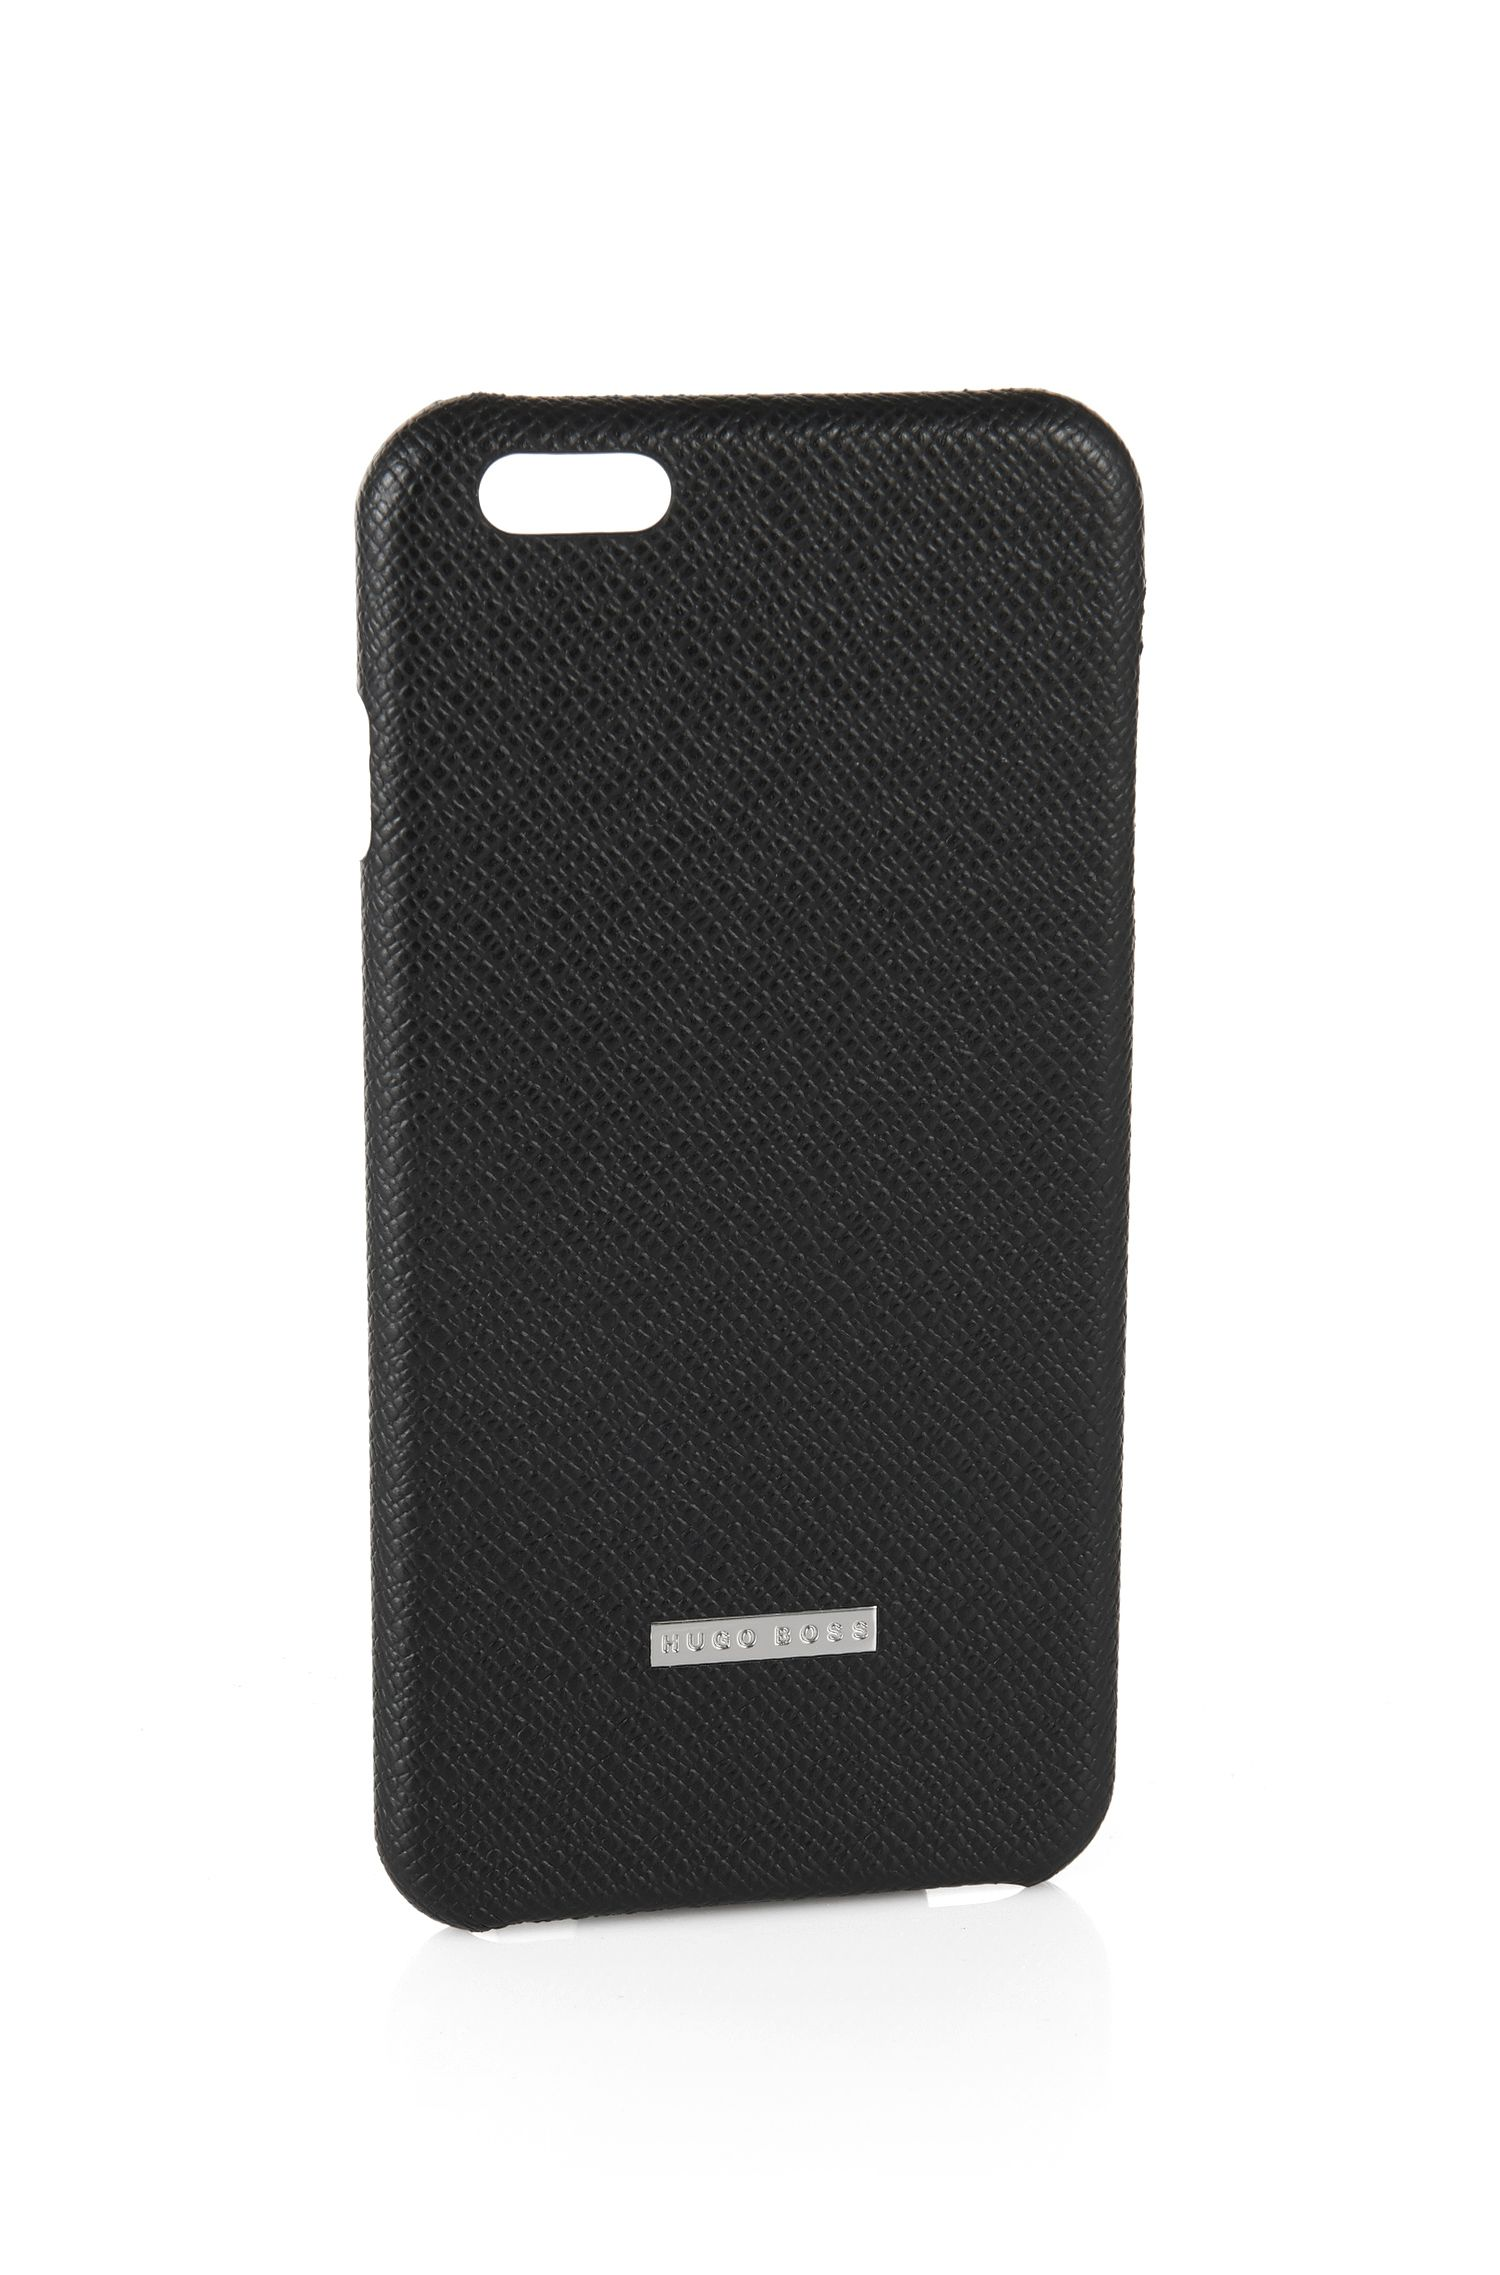 Smartphone-Cover für das iPhone 6 Plus: 'Siganture_ Phone'